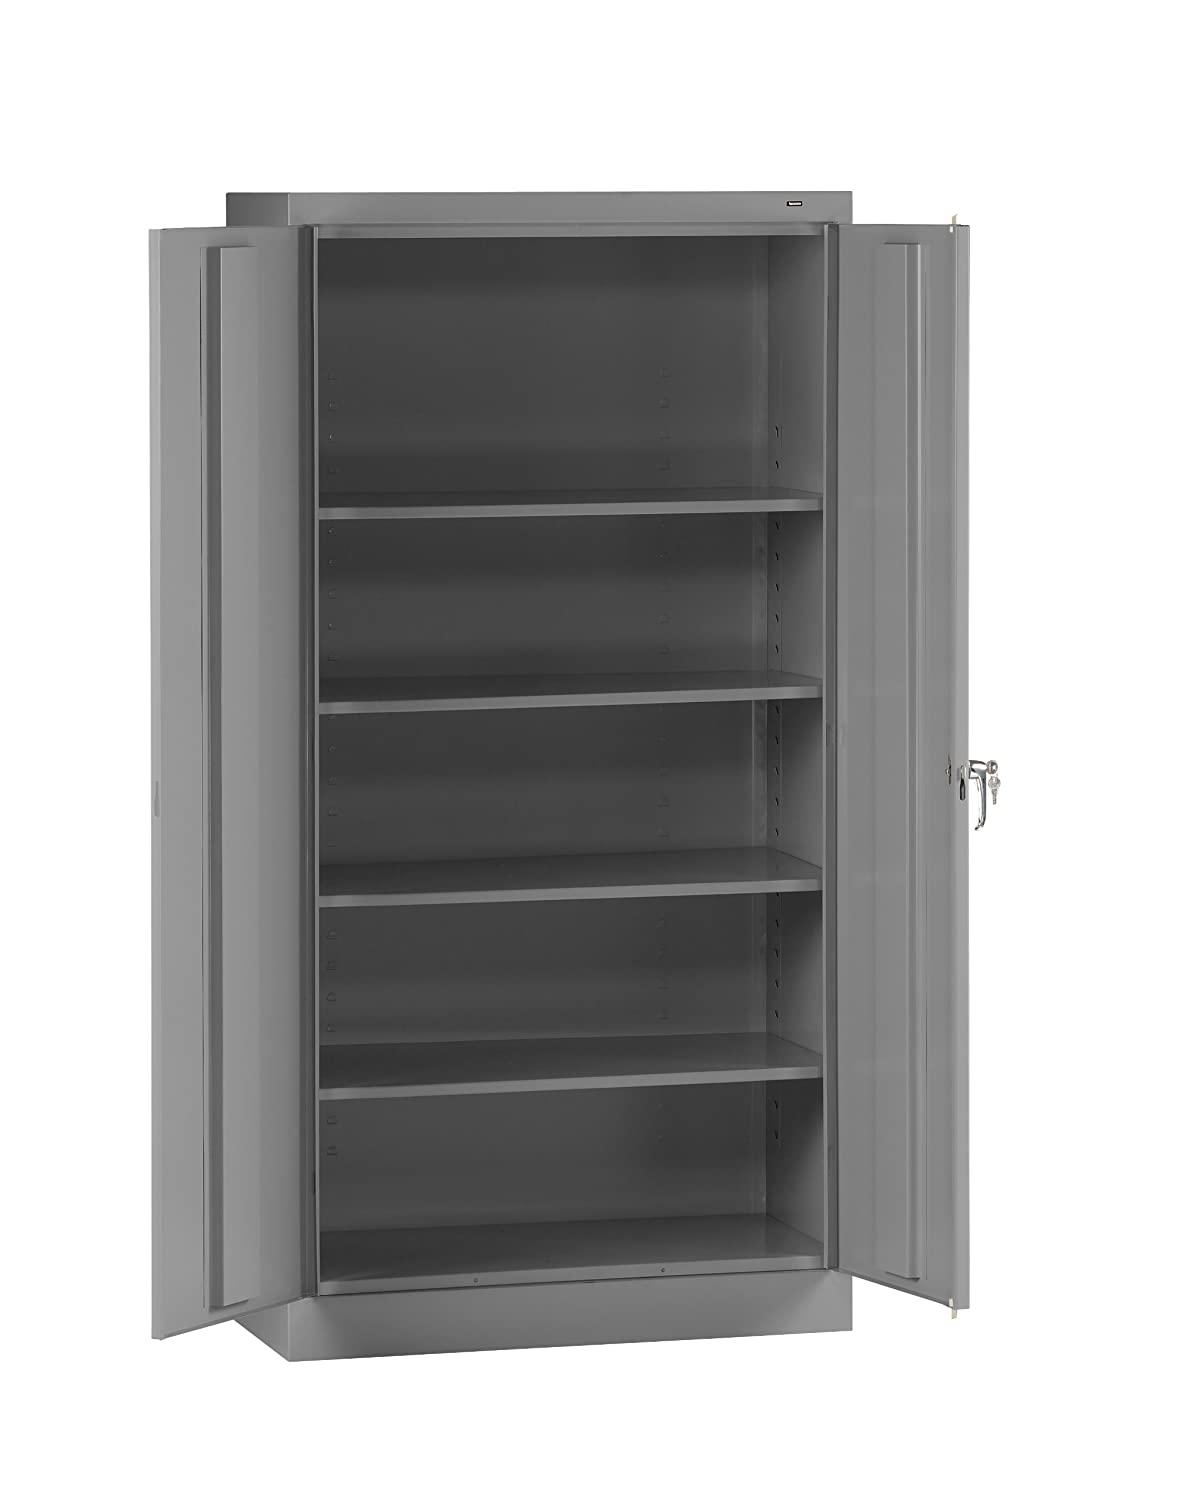 "Tennsco 7218 24 Gauge Steel Standard Welded Storage Cabinet, 4 Shelves, 150 lbs Capacity per Shelf, 36"" Width x 72"" Height x 18"" Depth, Medium Grey"